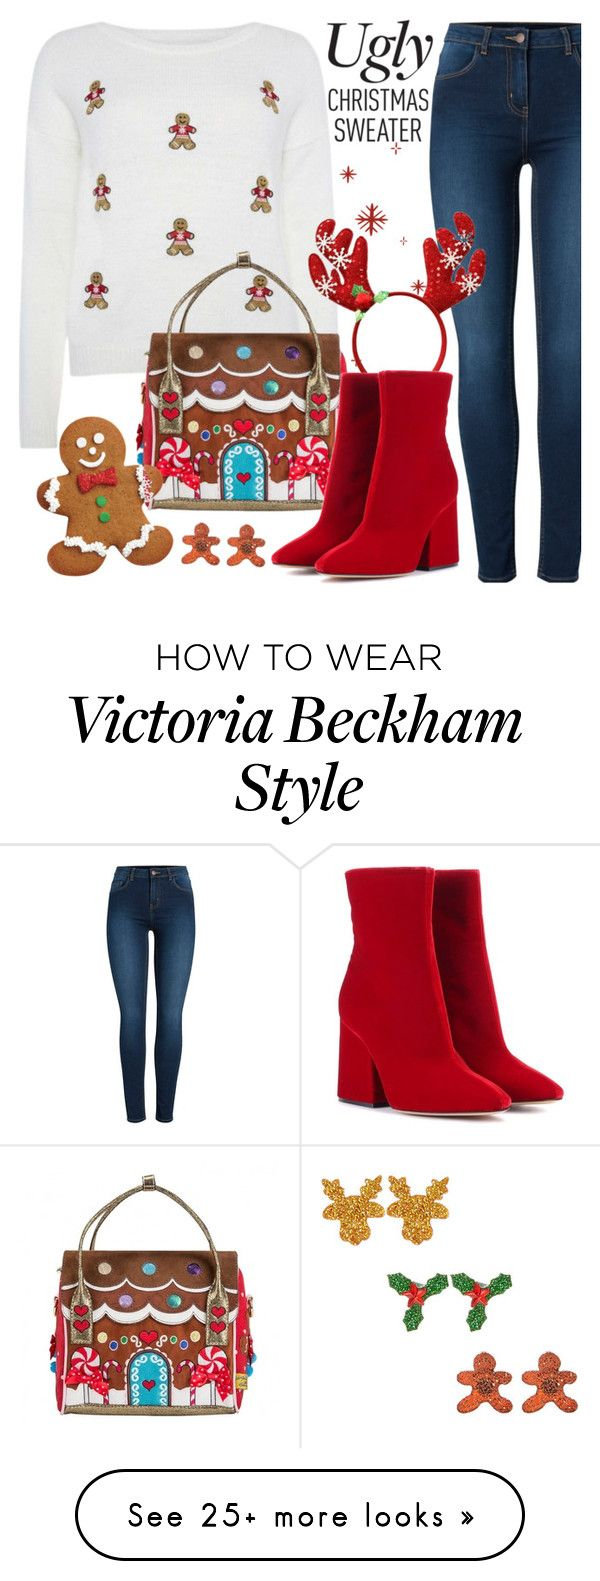 """""""Gingerbread Christmas Sweater"""" by chey-love on Polyvore featuring Pieces, Irregular Choice, Maison Margiela, Wilton, Christmas, gingerbread and uglychristmassweater"""